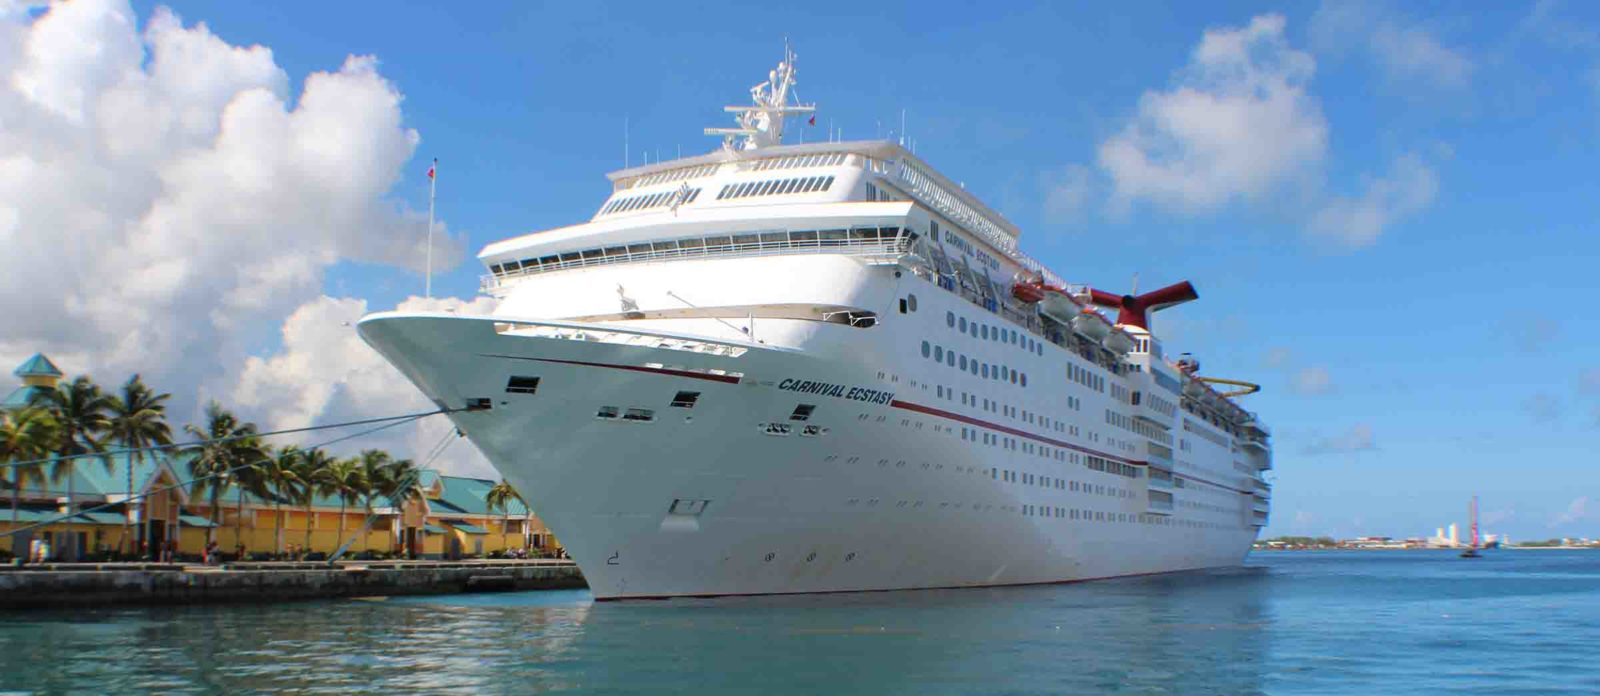 The Carnival Ecstasy in Port Nassau, Bahamas.